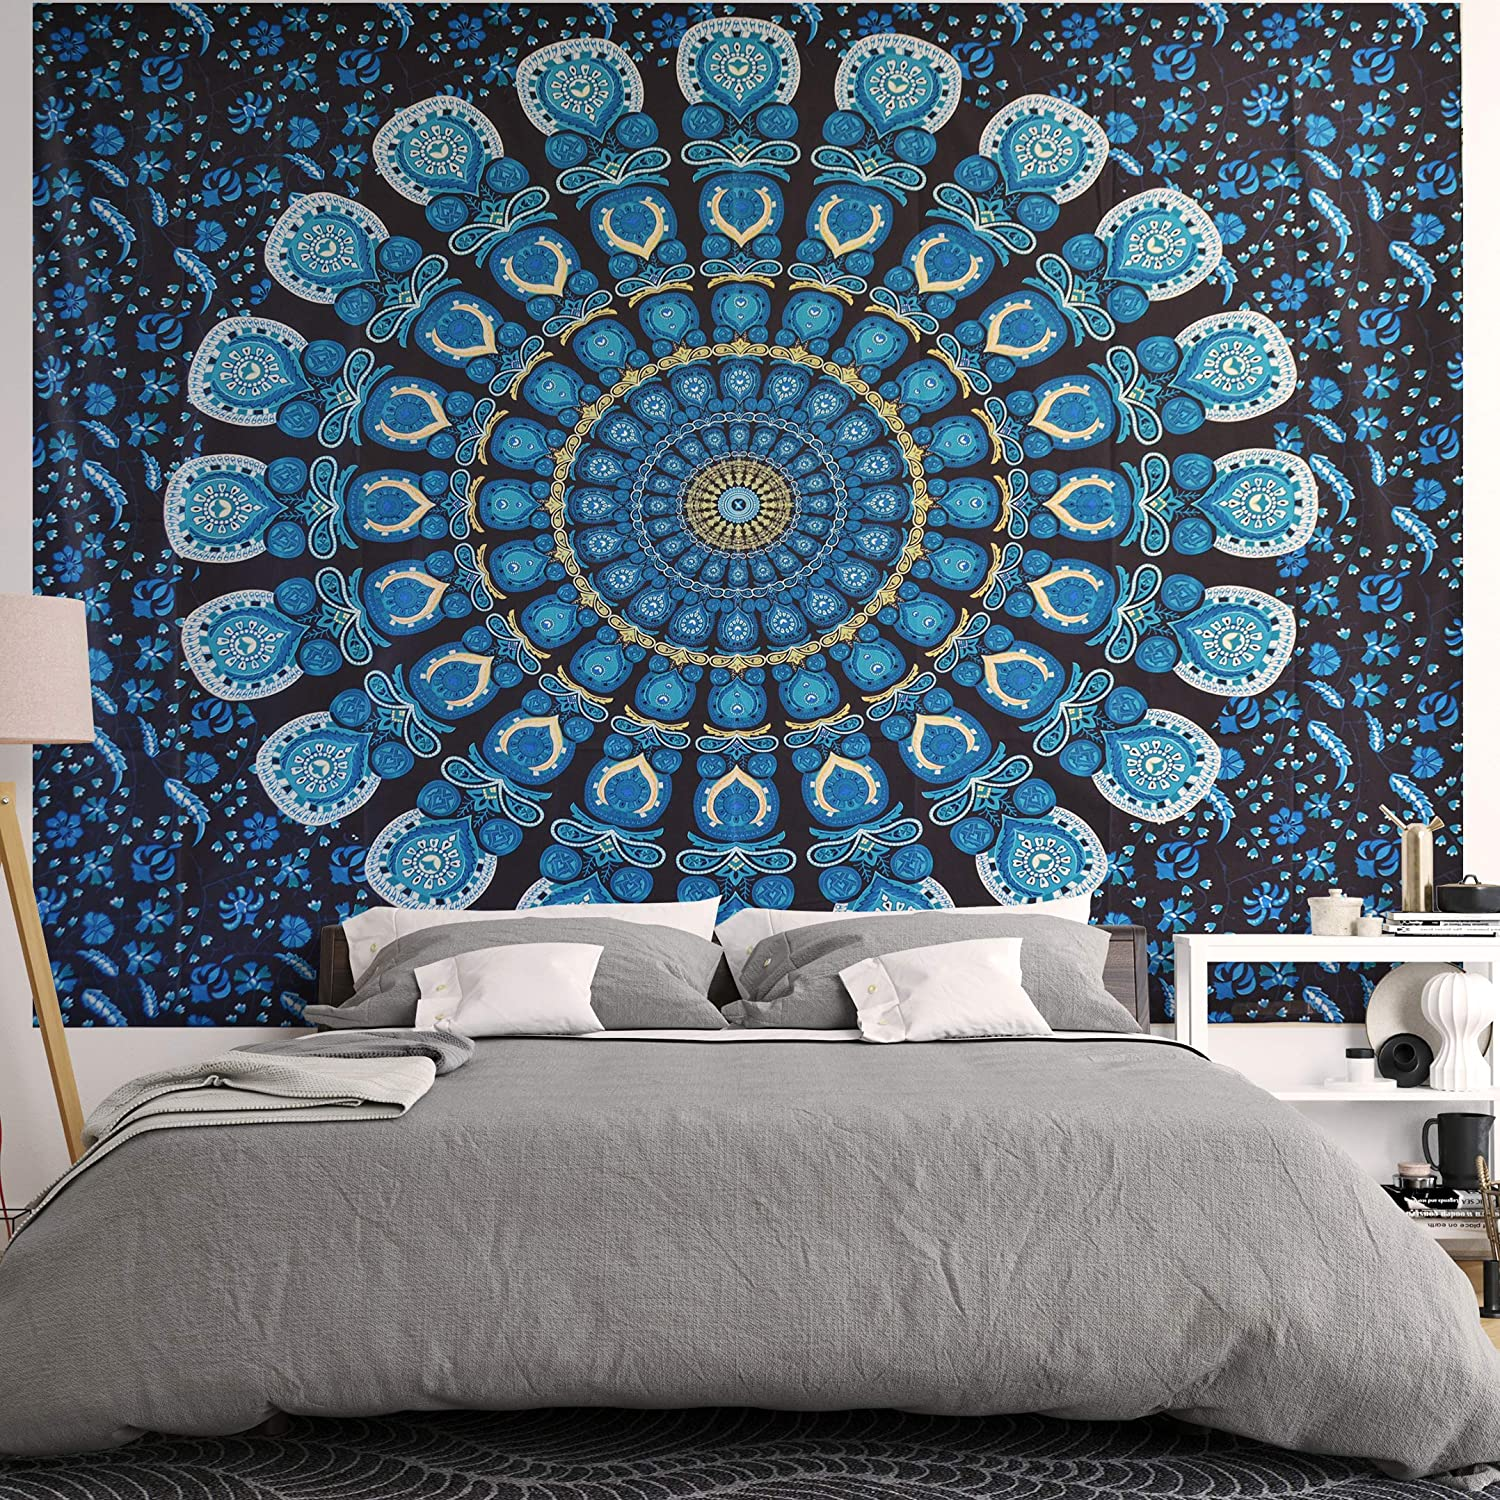 Amazon Com Blue Bohemian Tapestry Boho Hippie Psychedelic Decor For Wall Hanging For Your Dorm Room Or Bedroom Mandala Tapestries For Trippy Room Decor Dark Teal And Black Large Size For